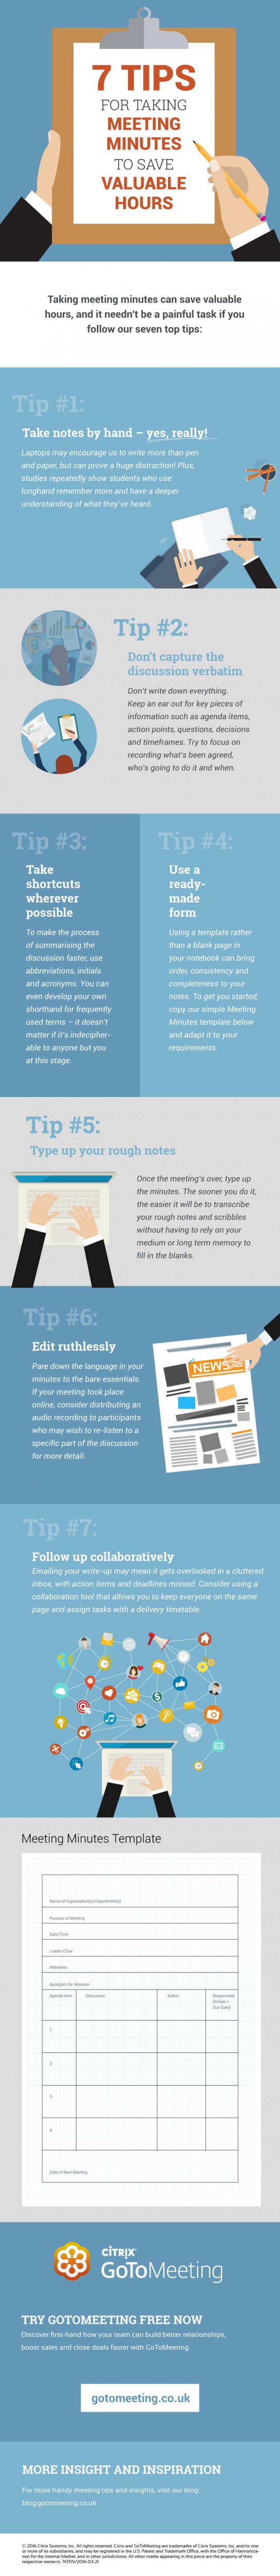 infographic-how-to-take-effective-meeting-minutes-630x5806